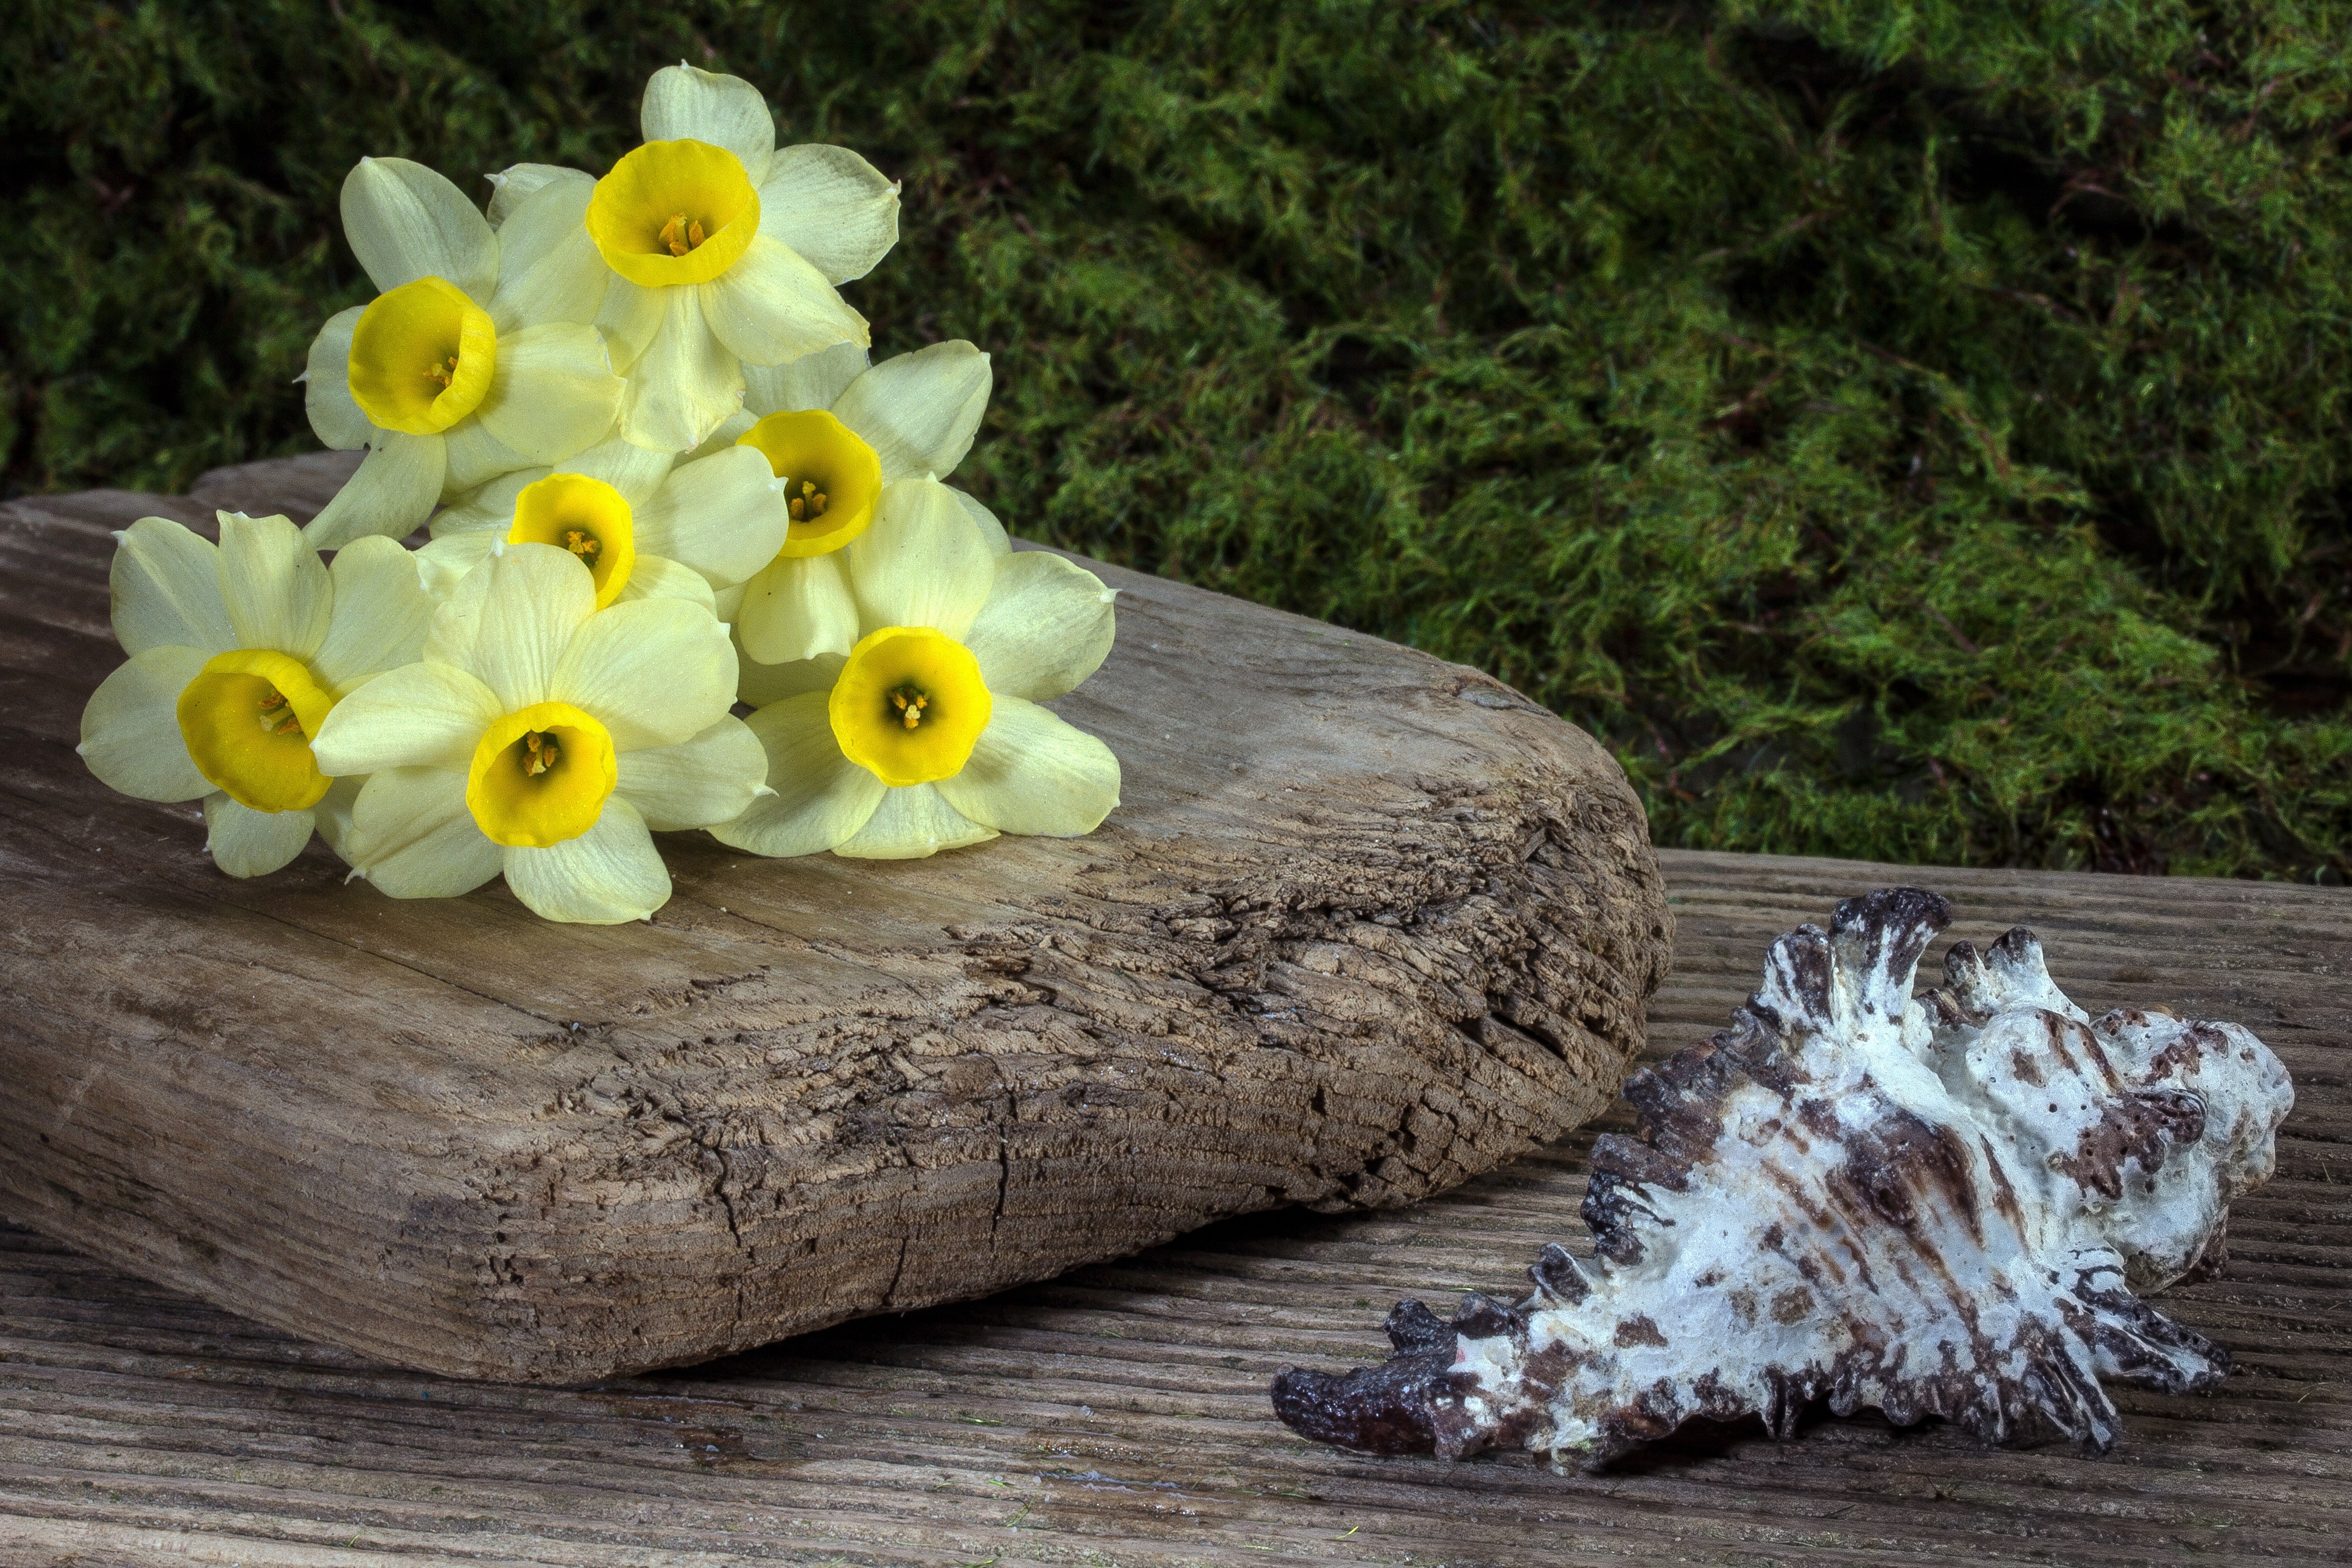 Yellow flower on wooden plank beside white shell photo